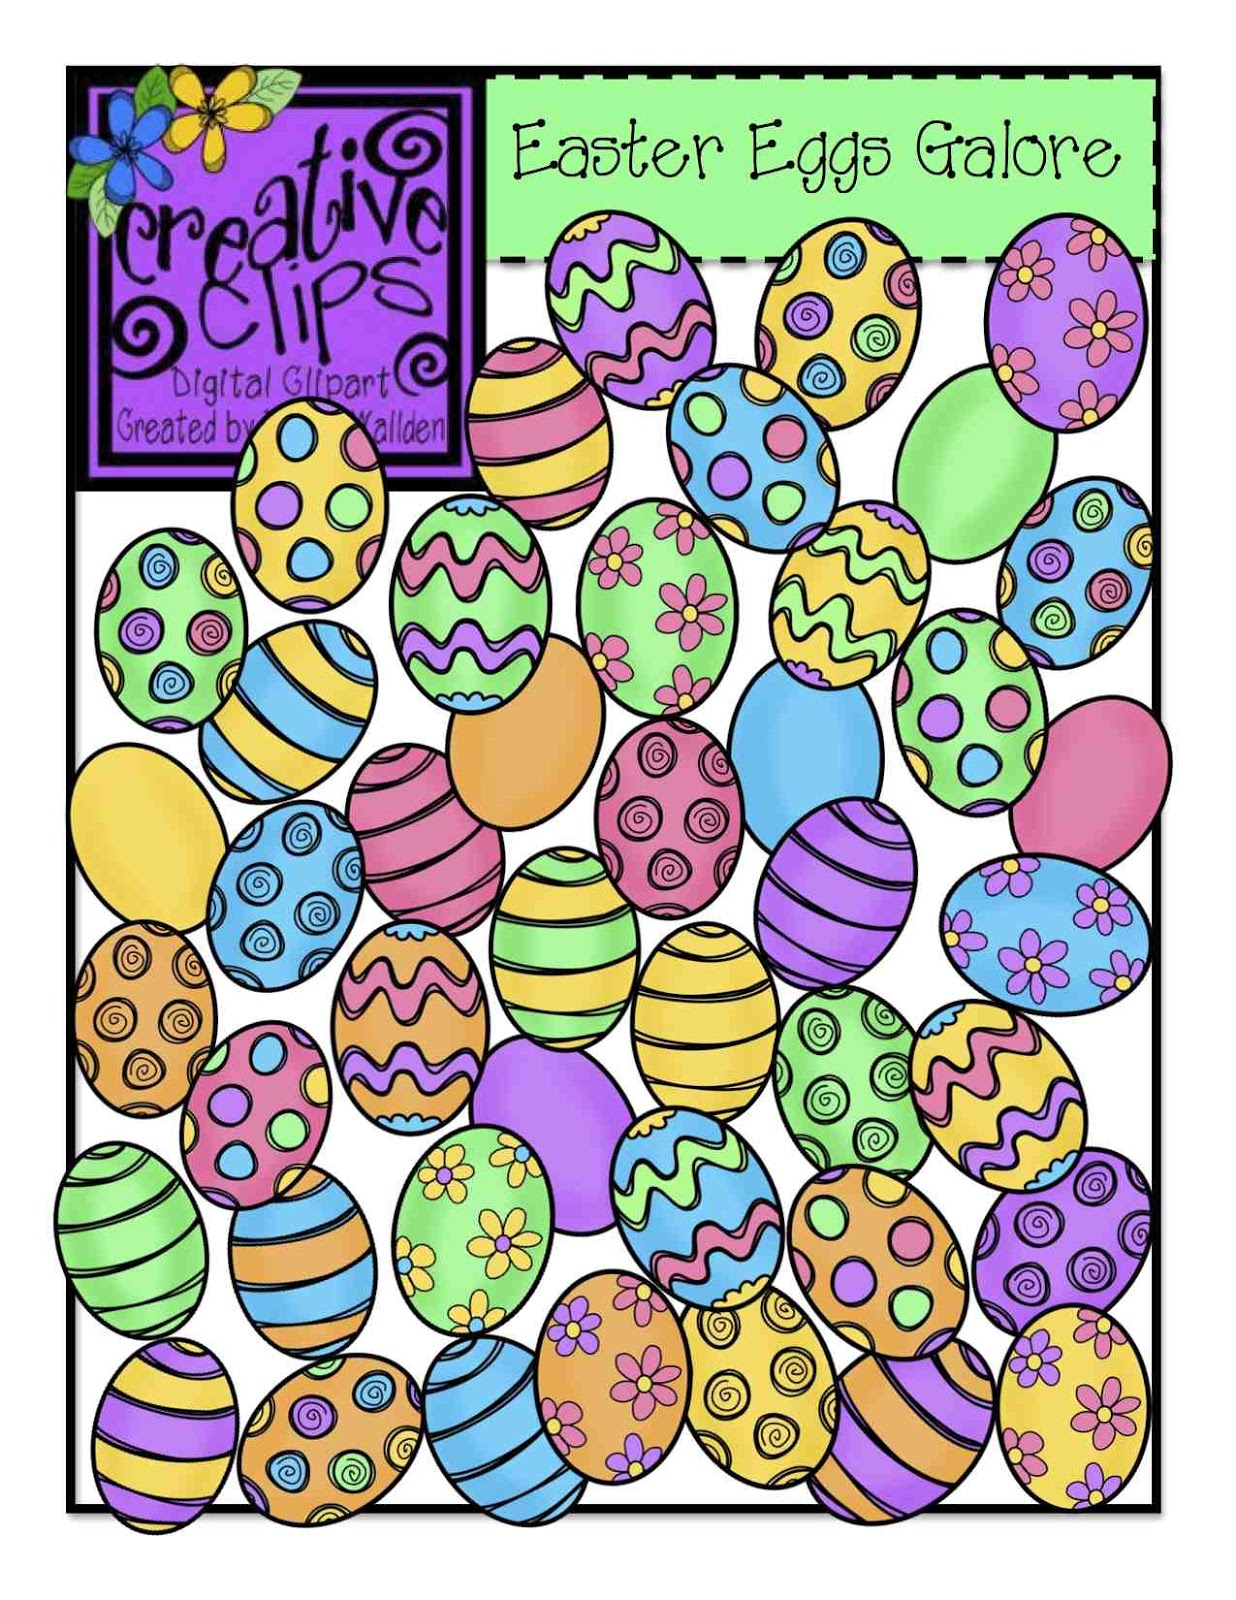 the creative chalkboard easter egg clipart freebie challenge